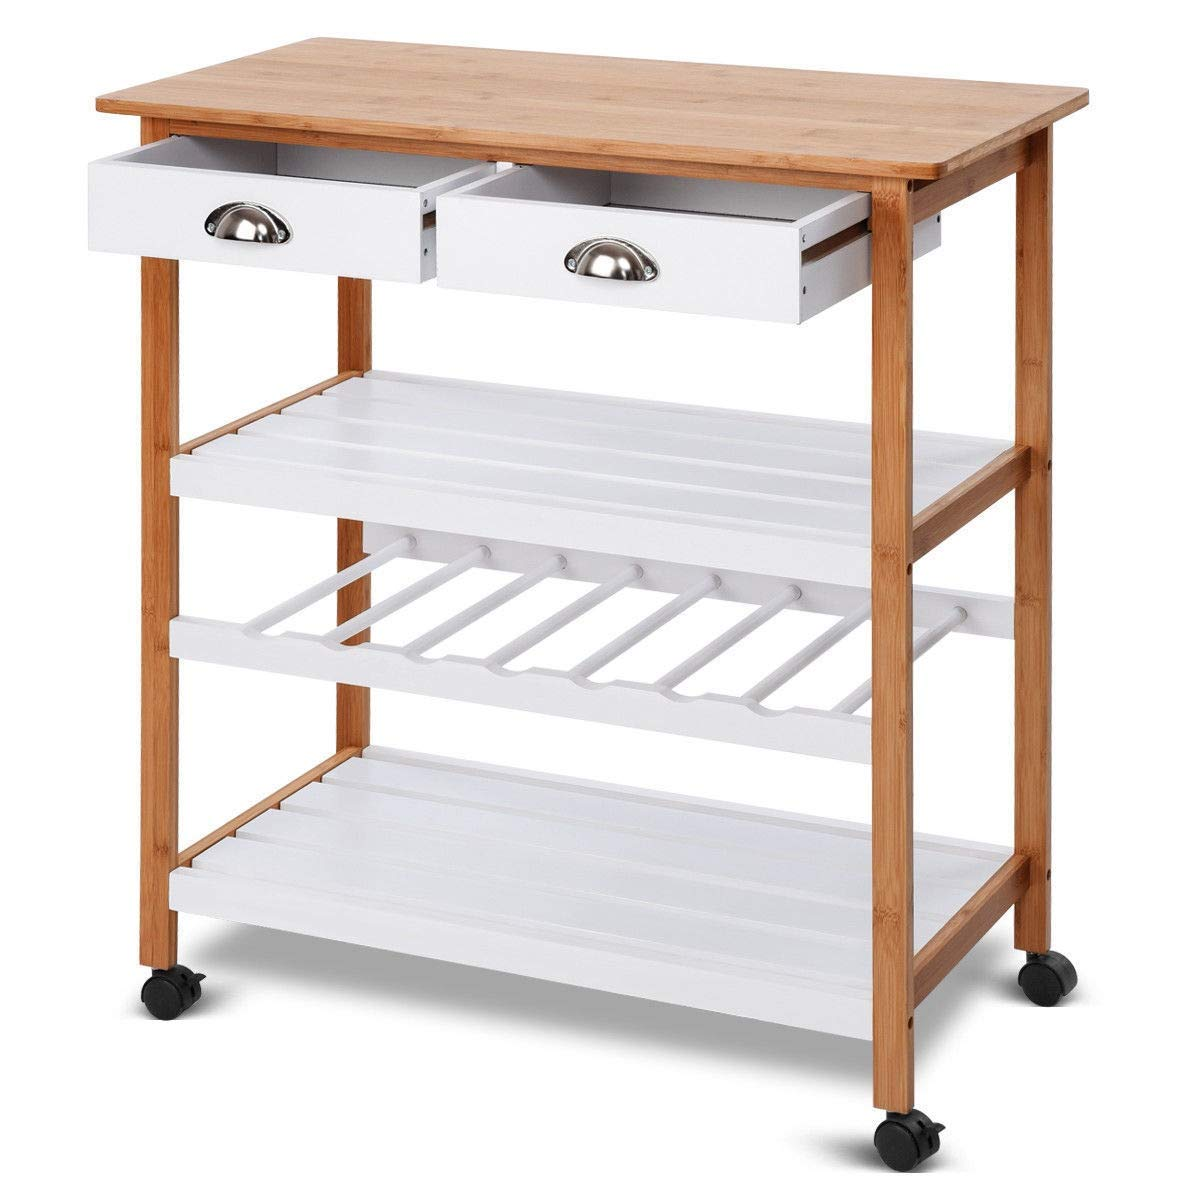 Lapha' Table Shelves 2 Drawer Rolling Portable Storage Bar Kitchen Trolley Food Serving Table Display Cart Side Table Dinner Party Patio Pool Rack Kitchen Office Serving Organizer